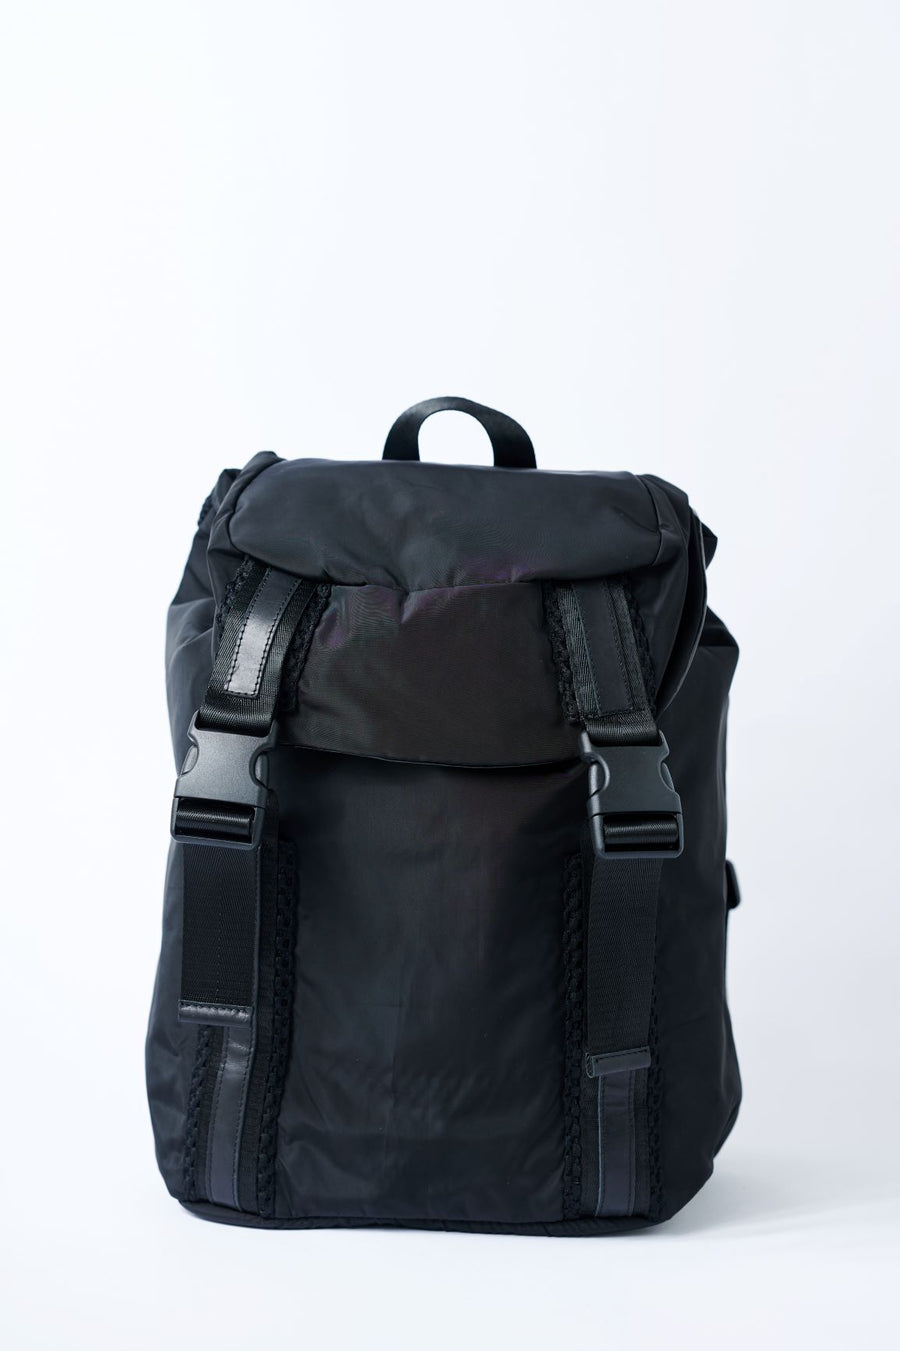 Black nylon flap top backpack with mesh and leather trim details and glossy black lining.